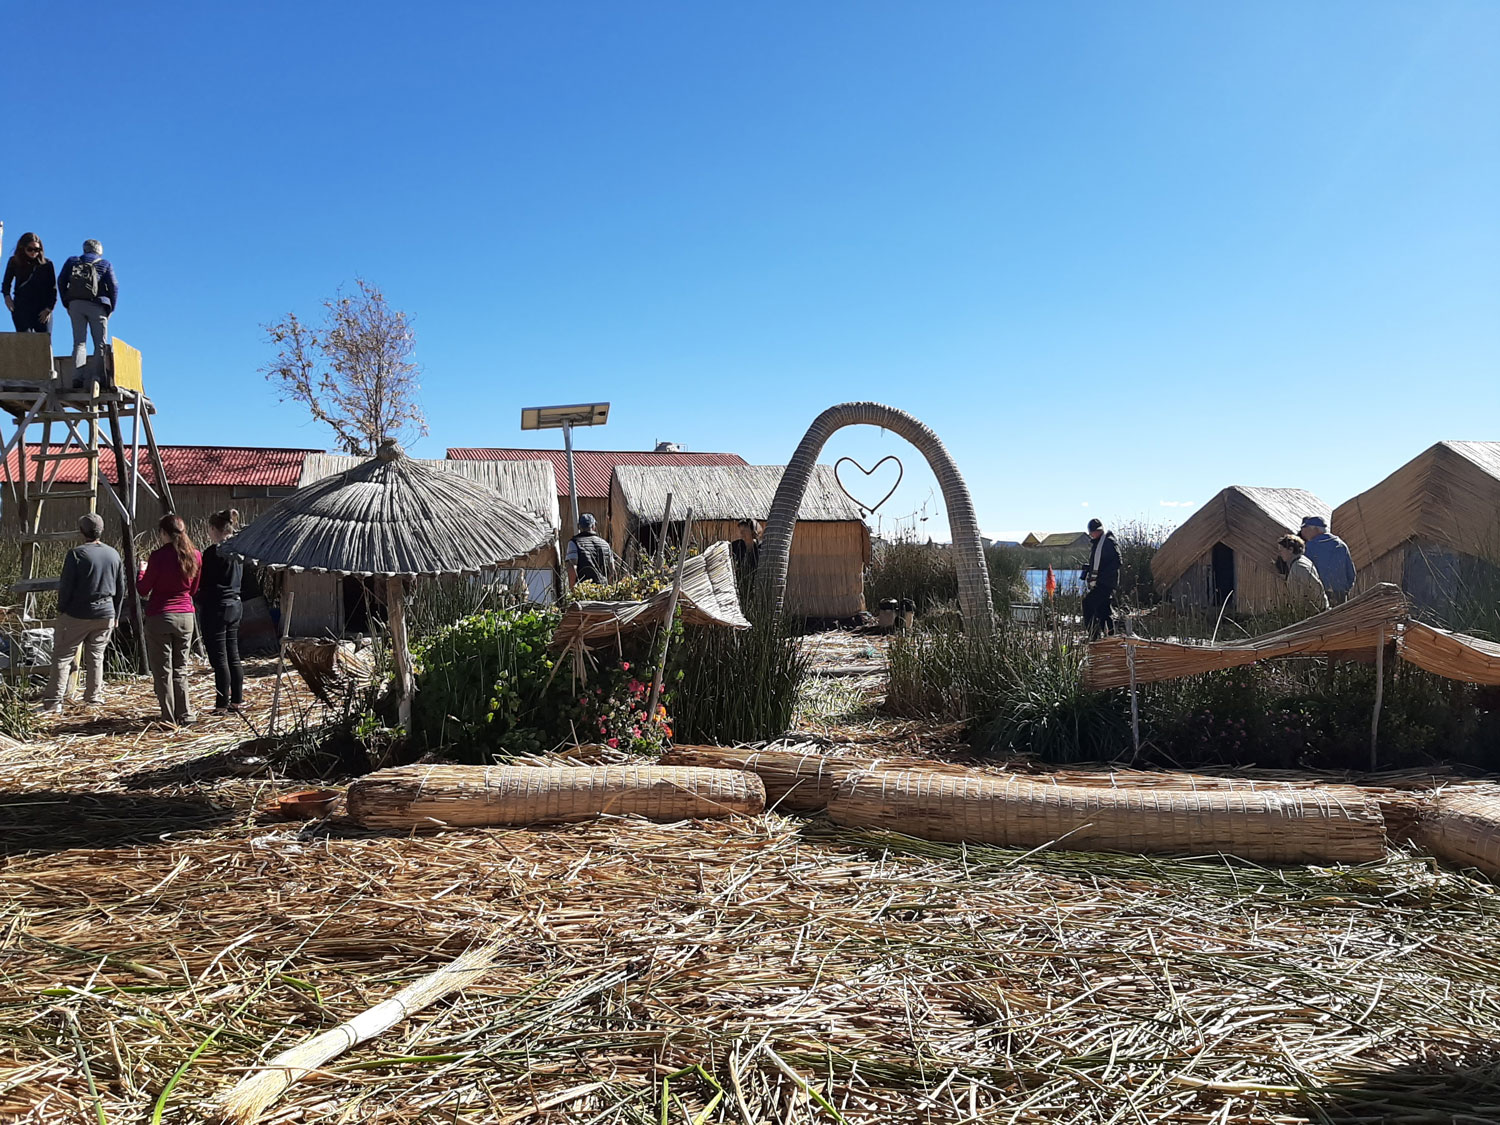 Uros islands are man-made from totora weeds that grow prolifically in Lake Titicaca (Photo by Bella Bonner)